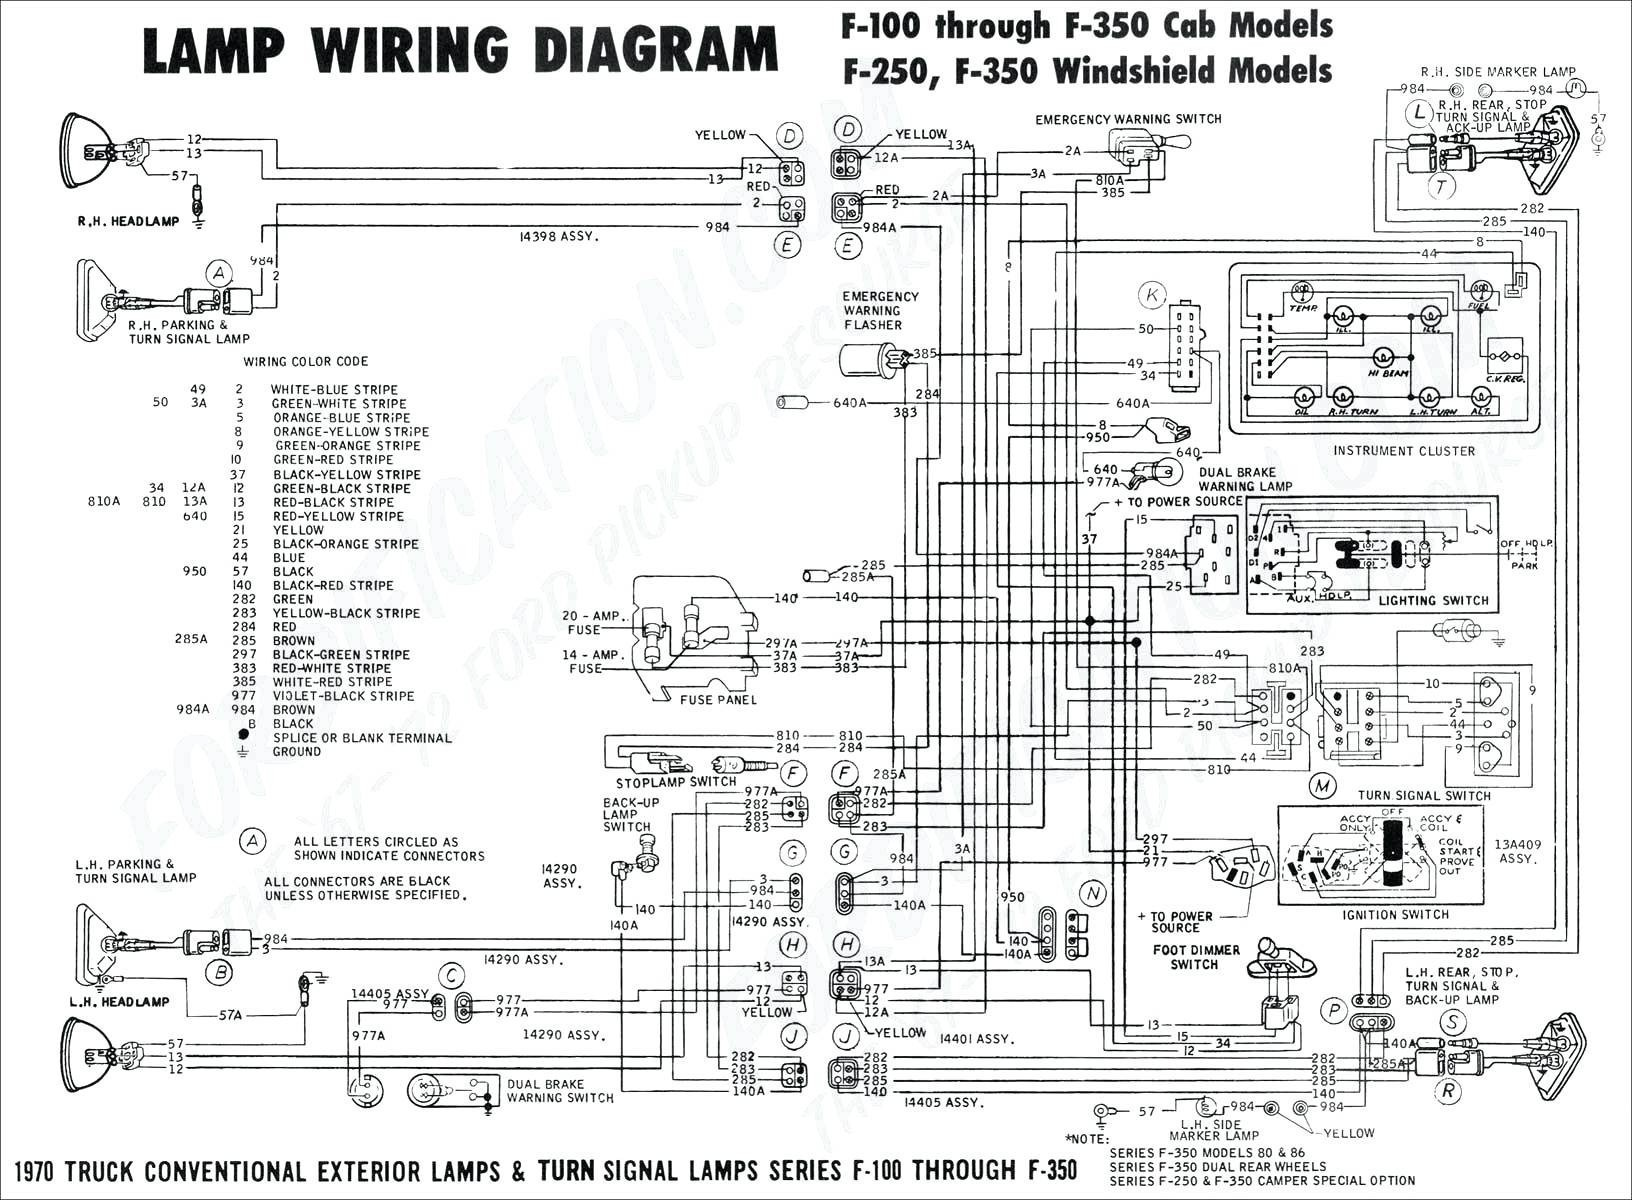 Remote Car Circuit Diagram Power Control Circuit Controlcircuit Circuit Diagram Seekic Of Remote Car Circuit Diagram